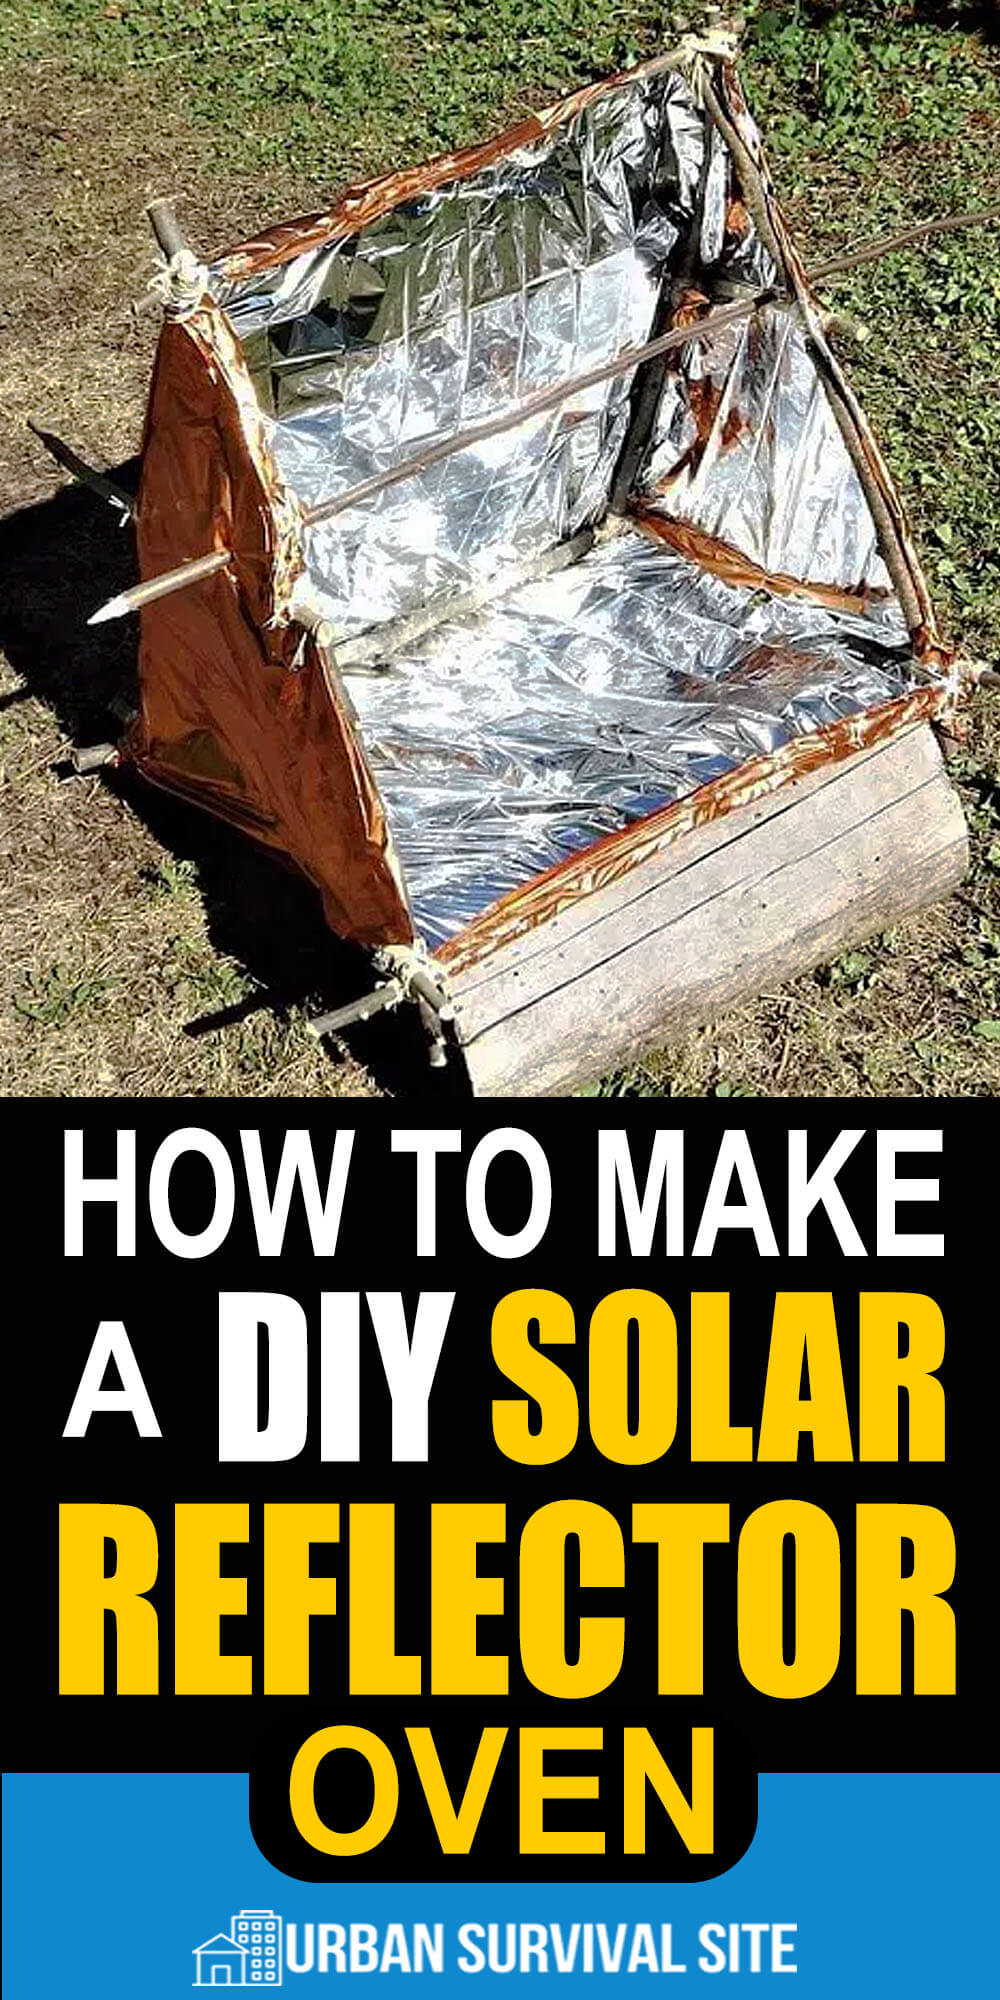 How To Make A DIY Solar Reflector Oven